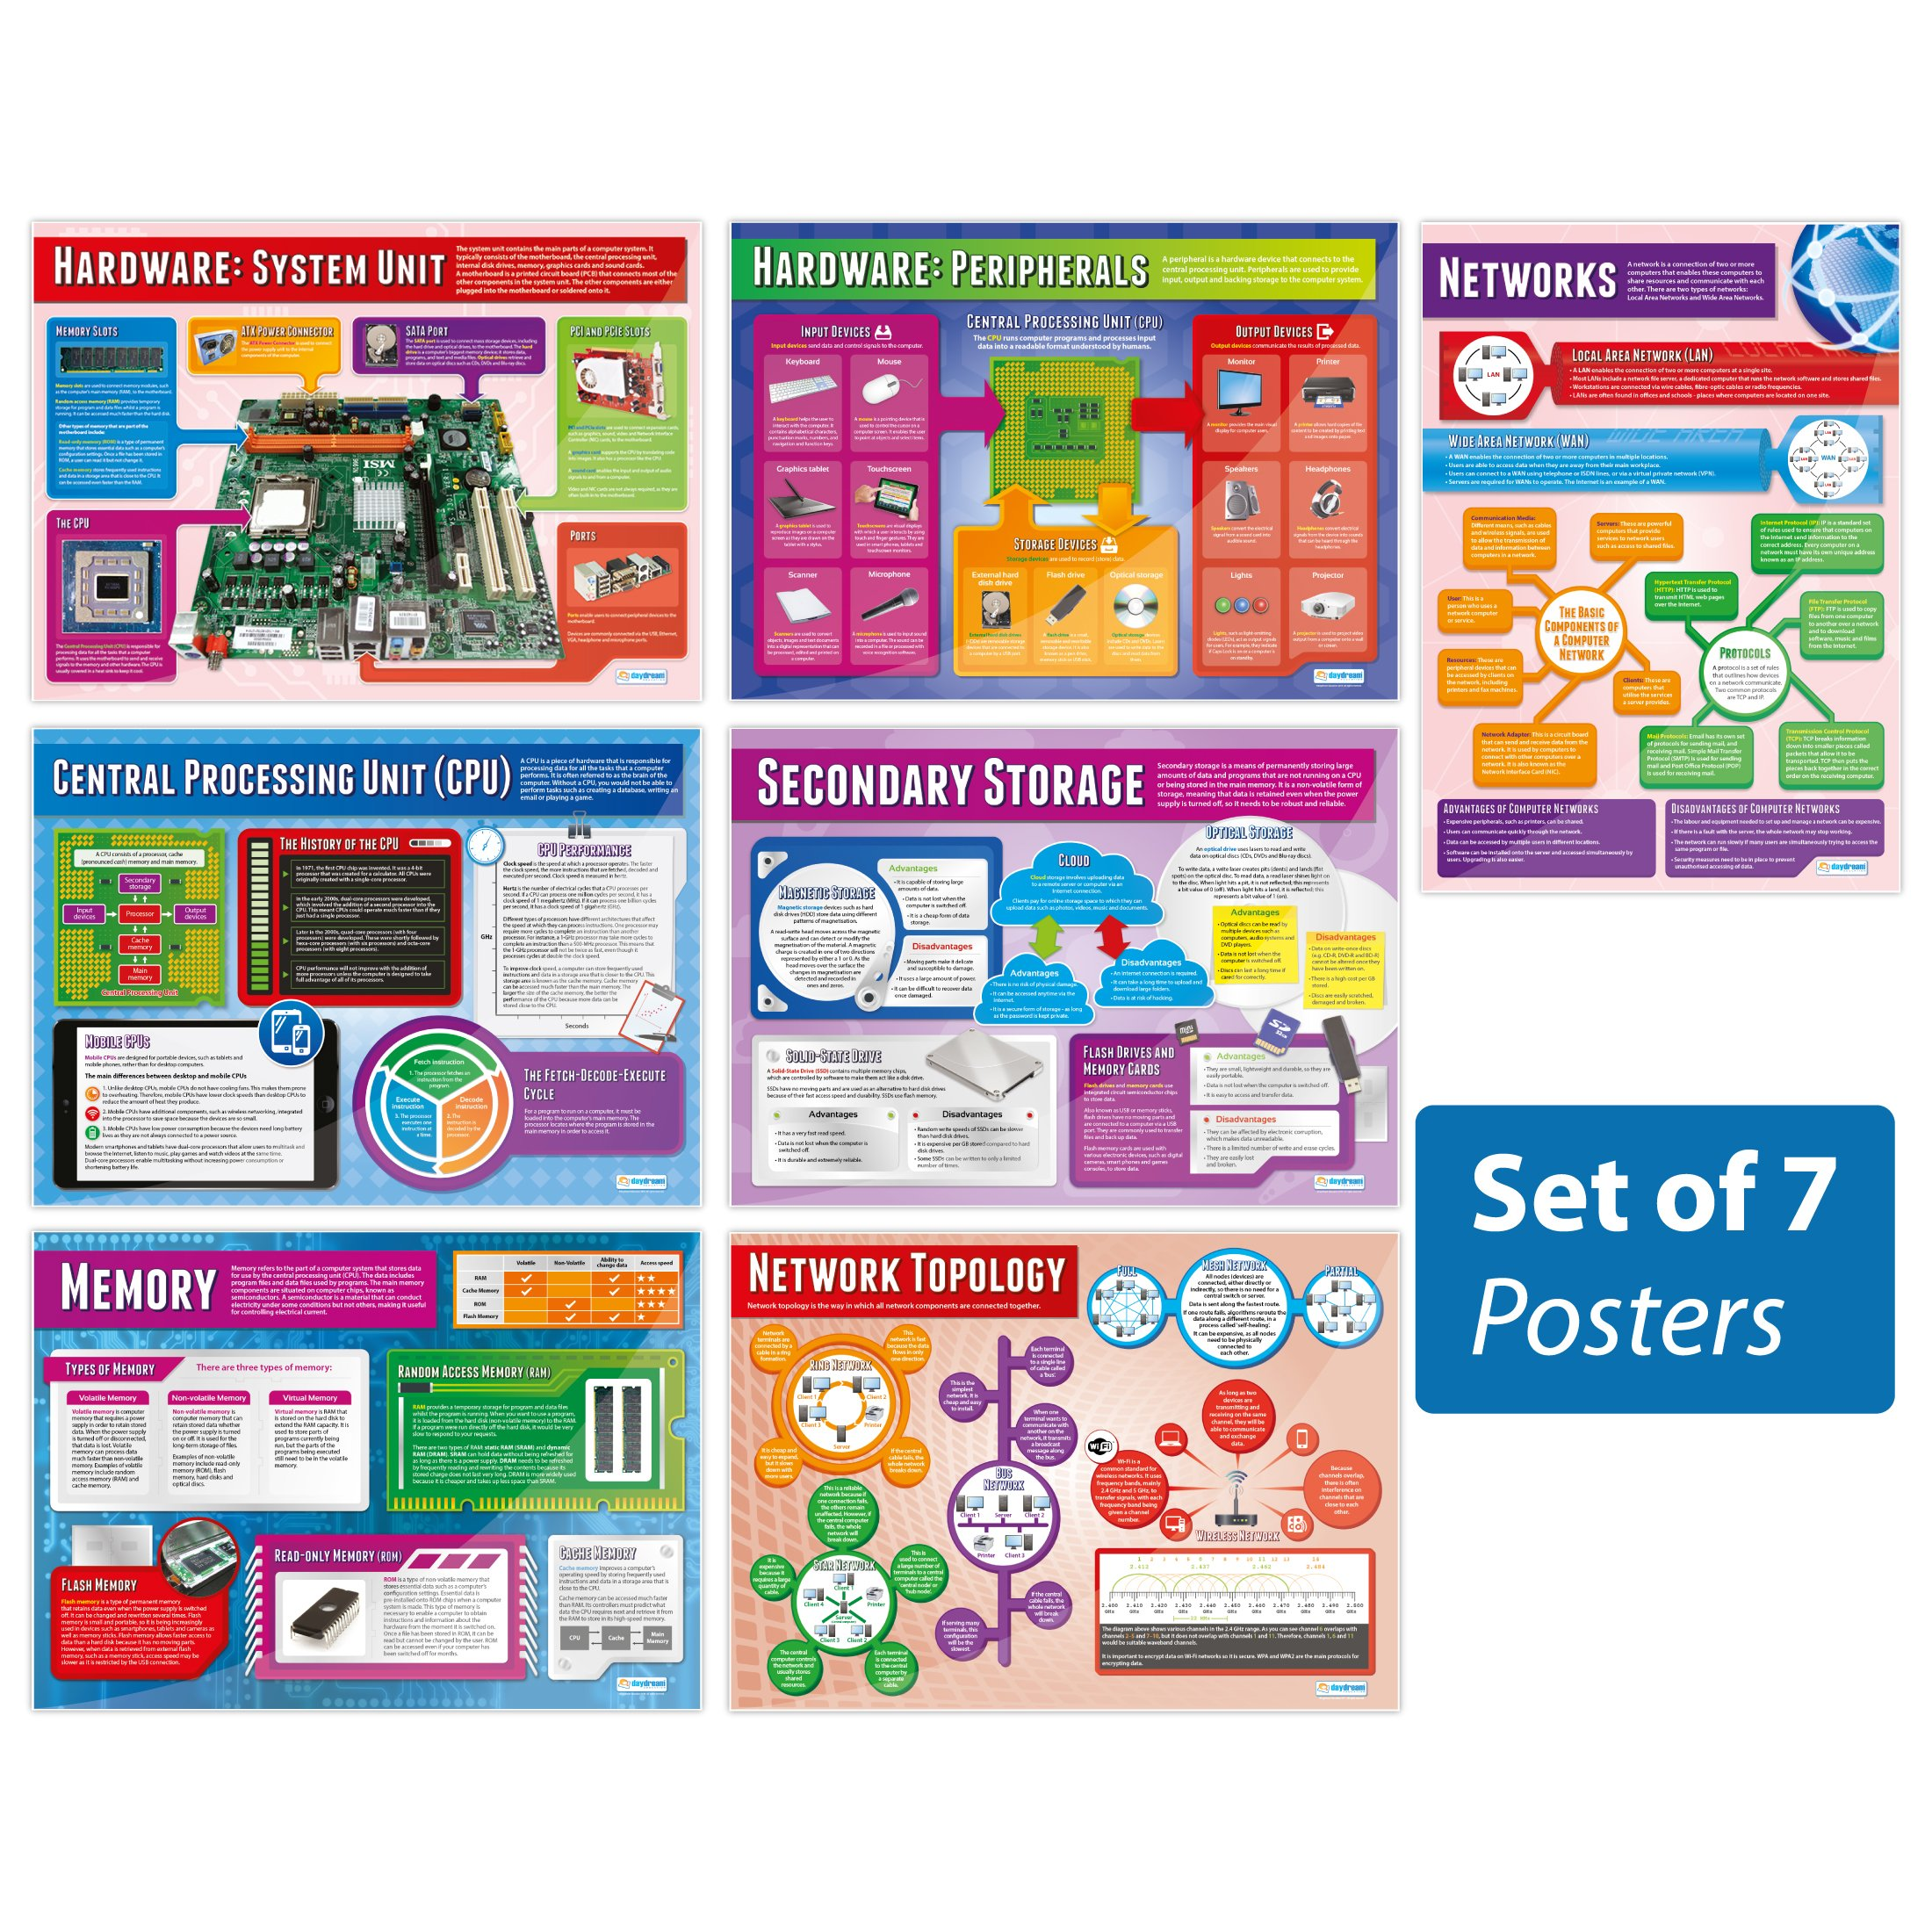 Amazon Com Computer Systems And Networks Posters Set Of 7 Computer Science Posters Gloss Paper Measuring 33 X 23 5 Stem Posters For The Classroom Education Charts By Daydream Education Office Products